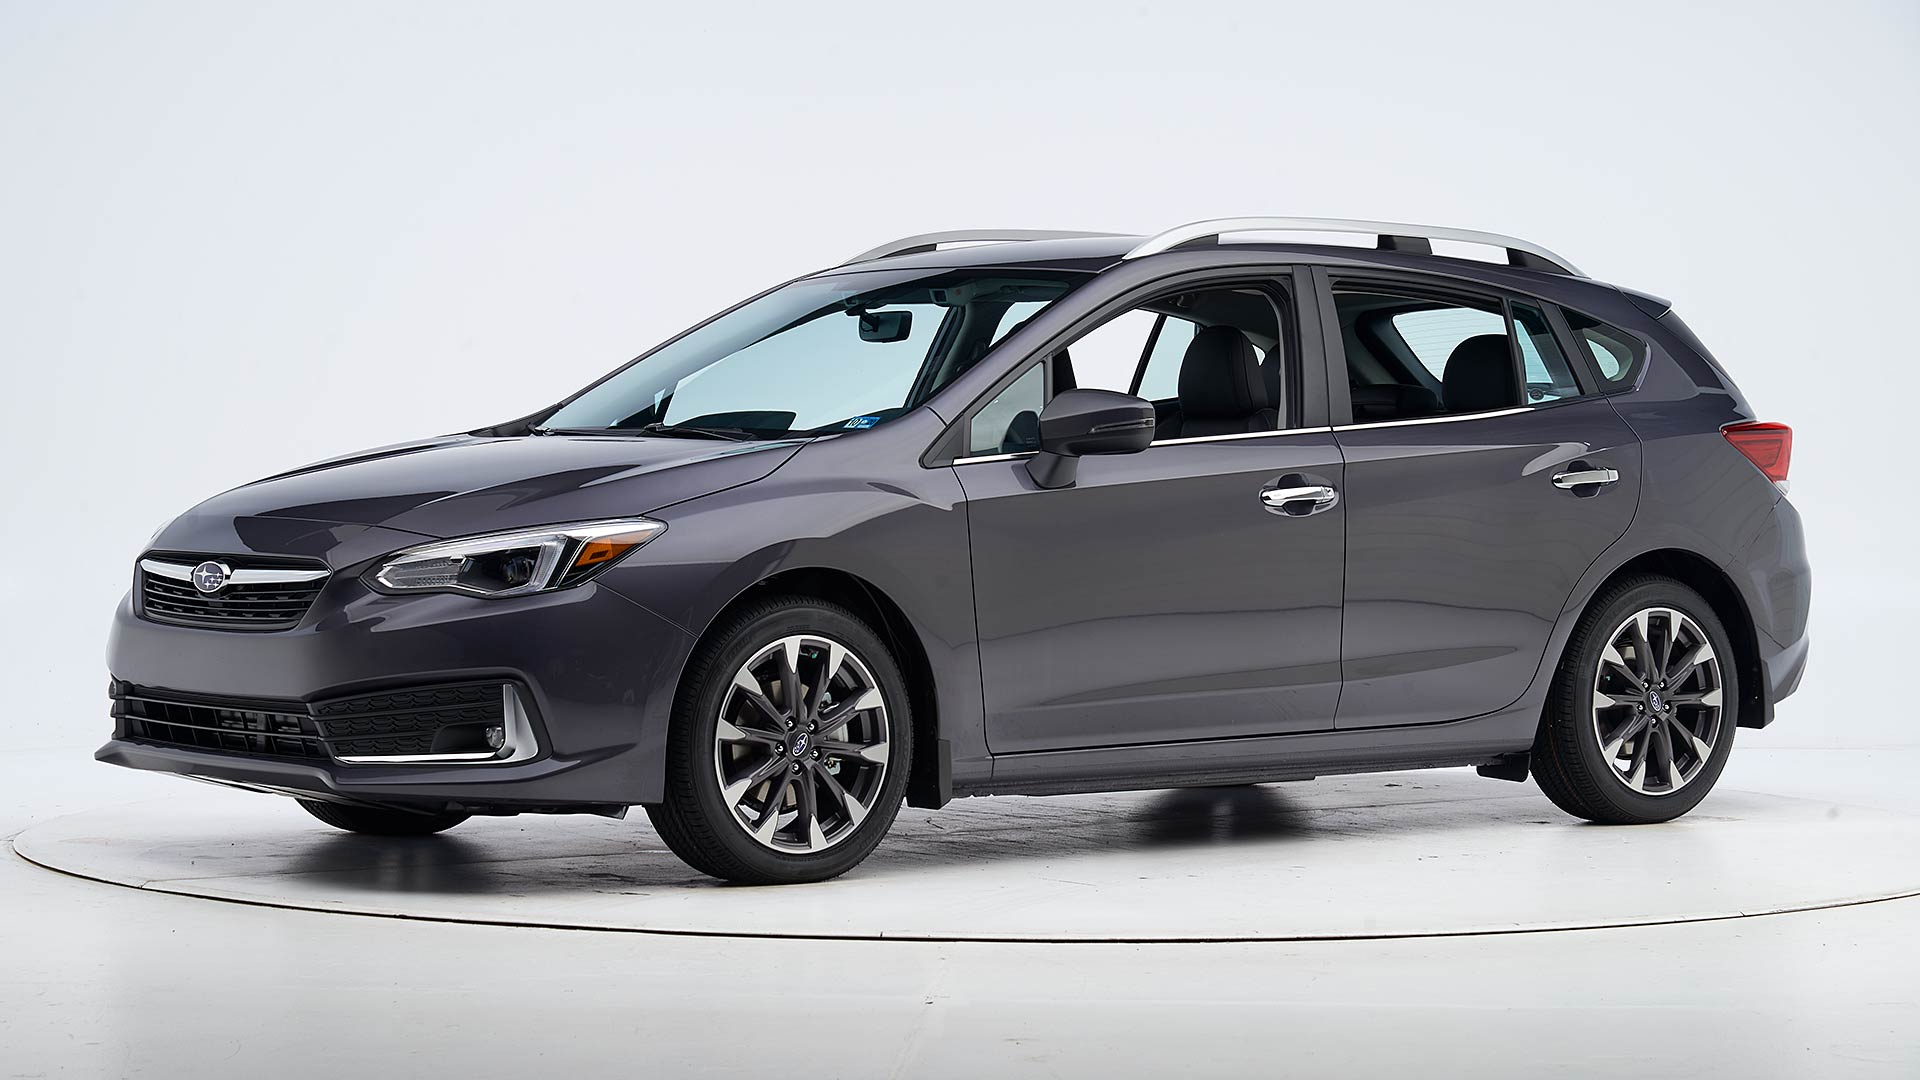 2021 Subaru Impreza 4-door wagon